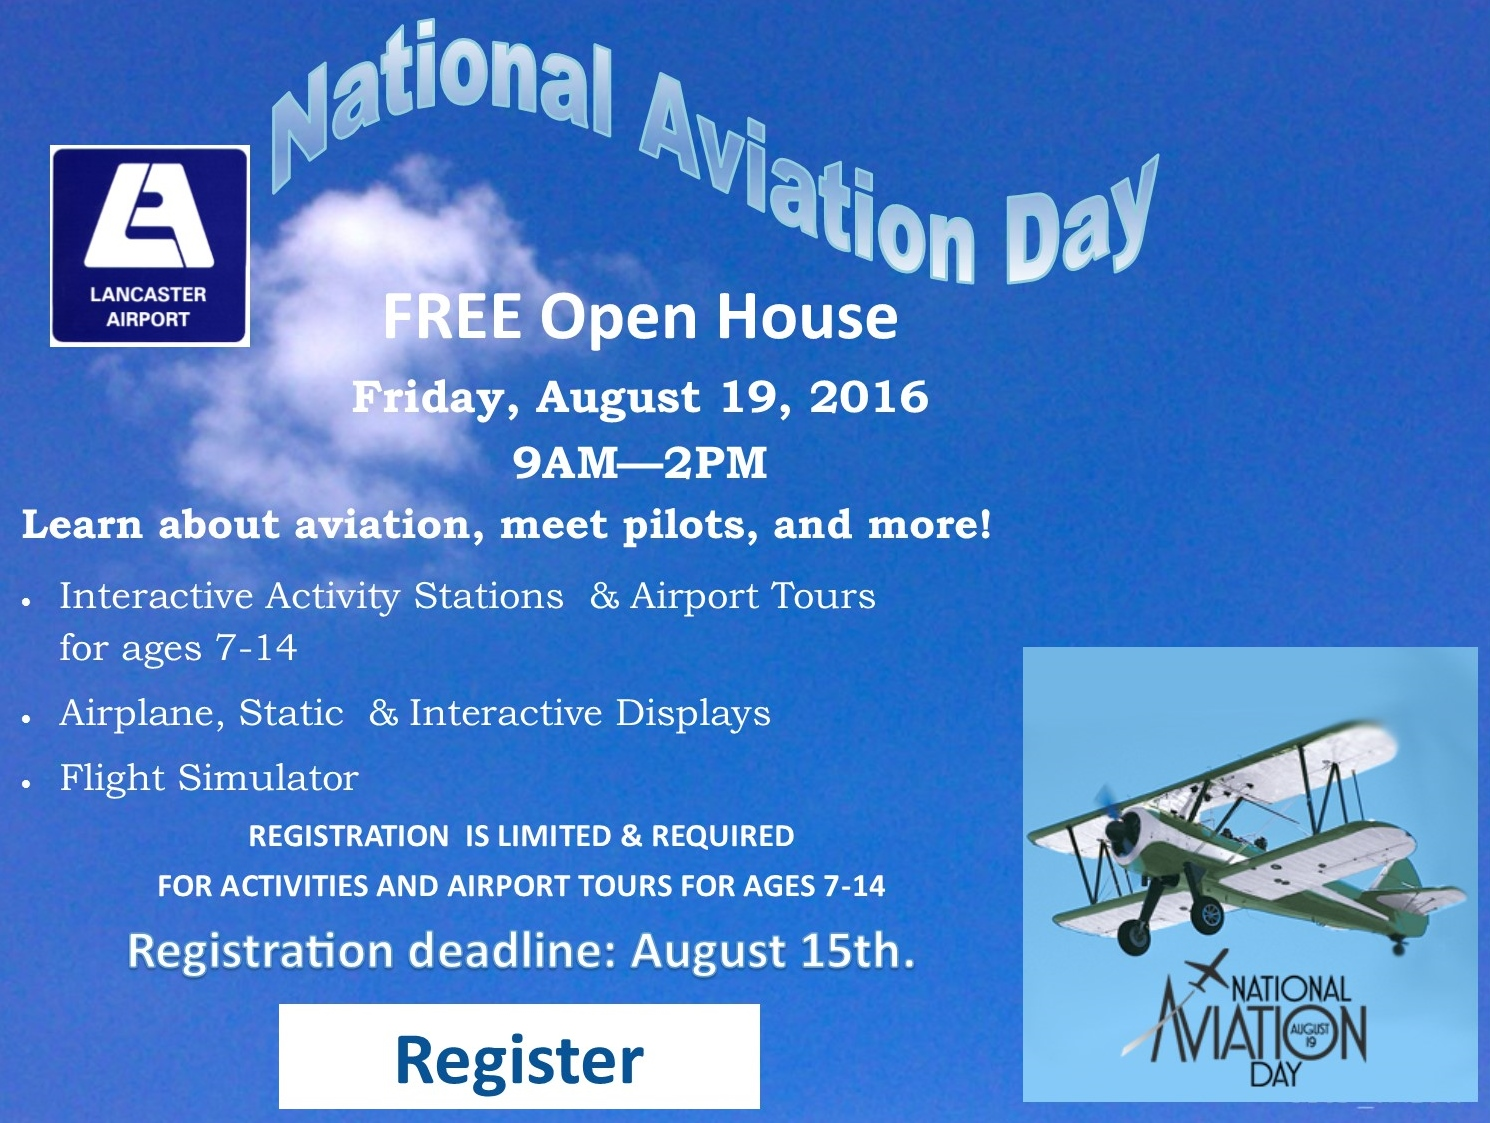 national-aviation-day-poster-2016-for-web – Lancaster Airport